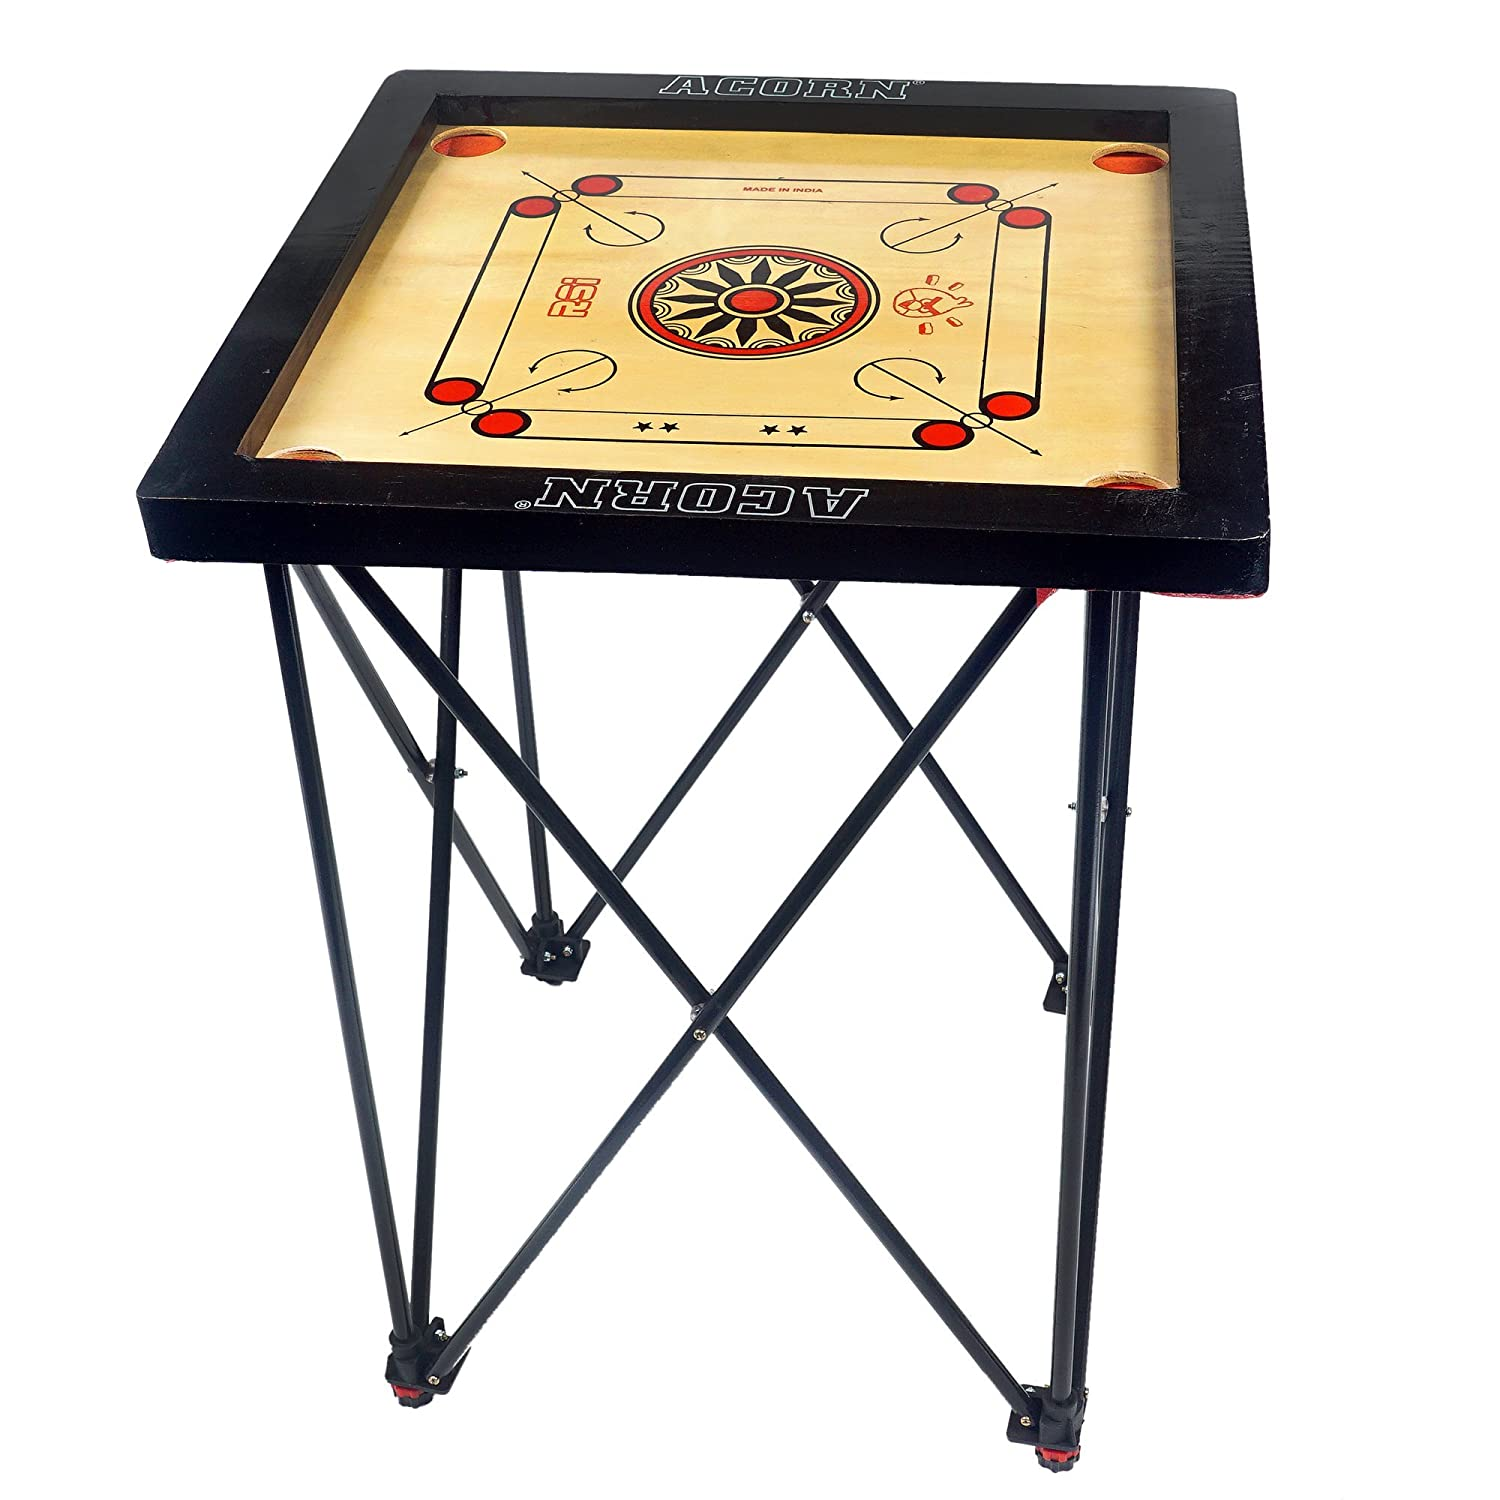 Acorn Adjustable Easy Fold Carrom Stand with Carrom Board (18 * 18)